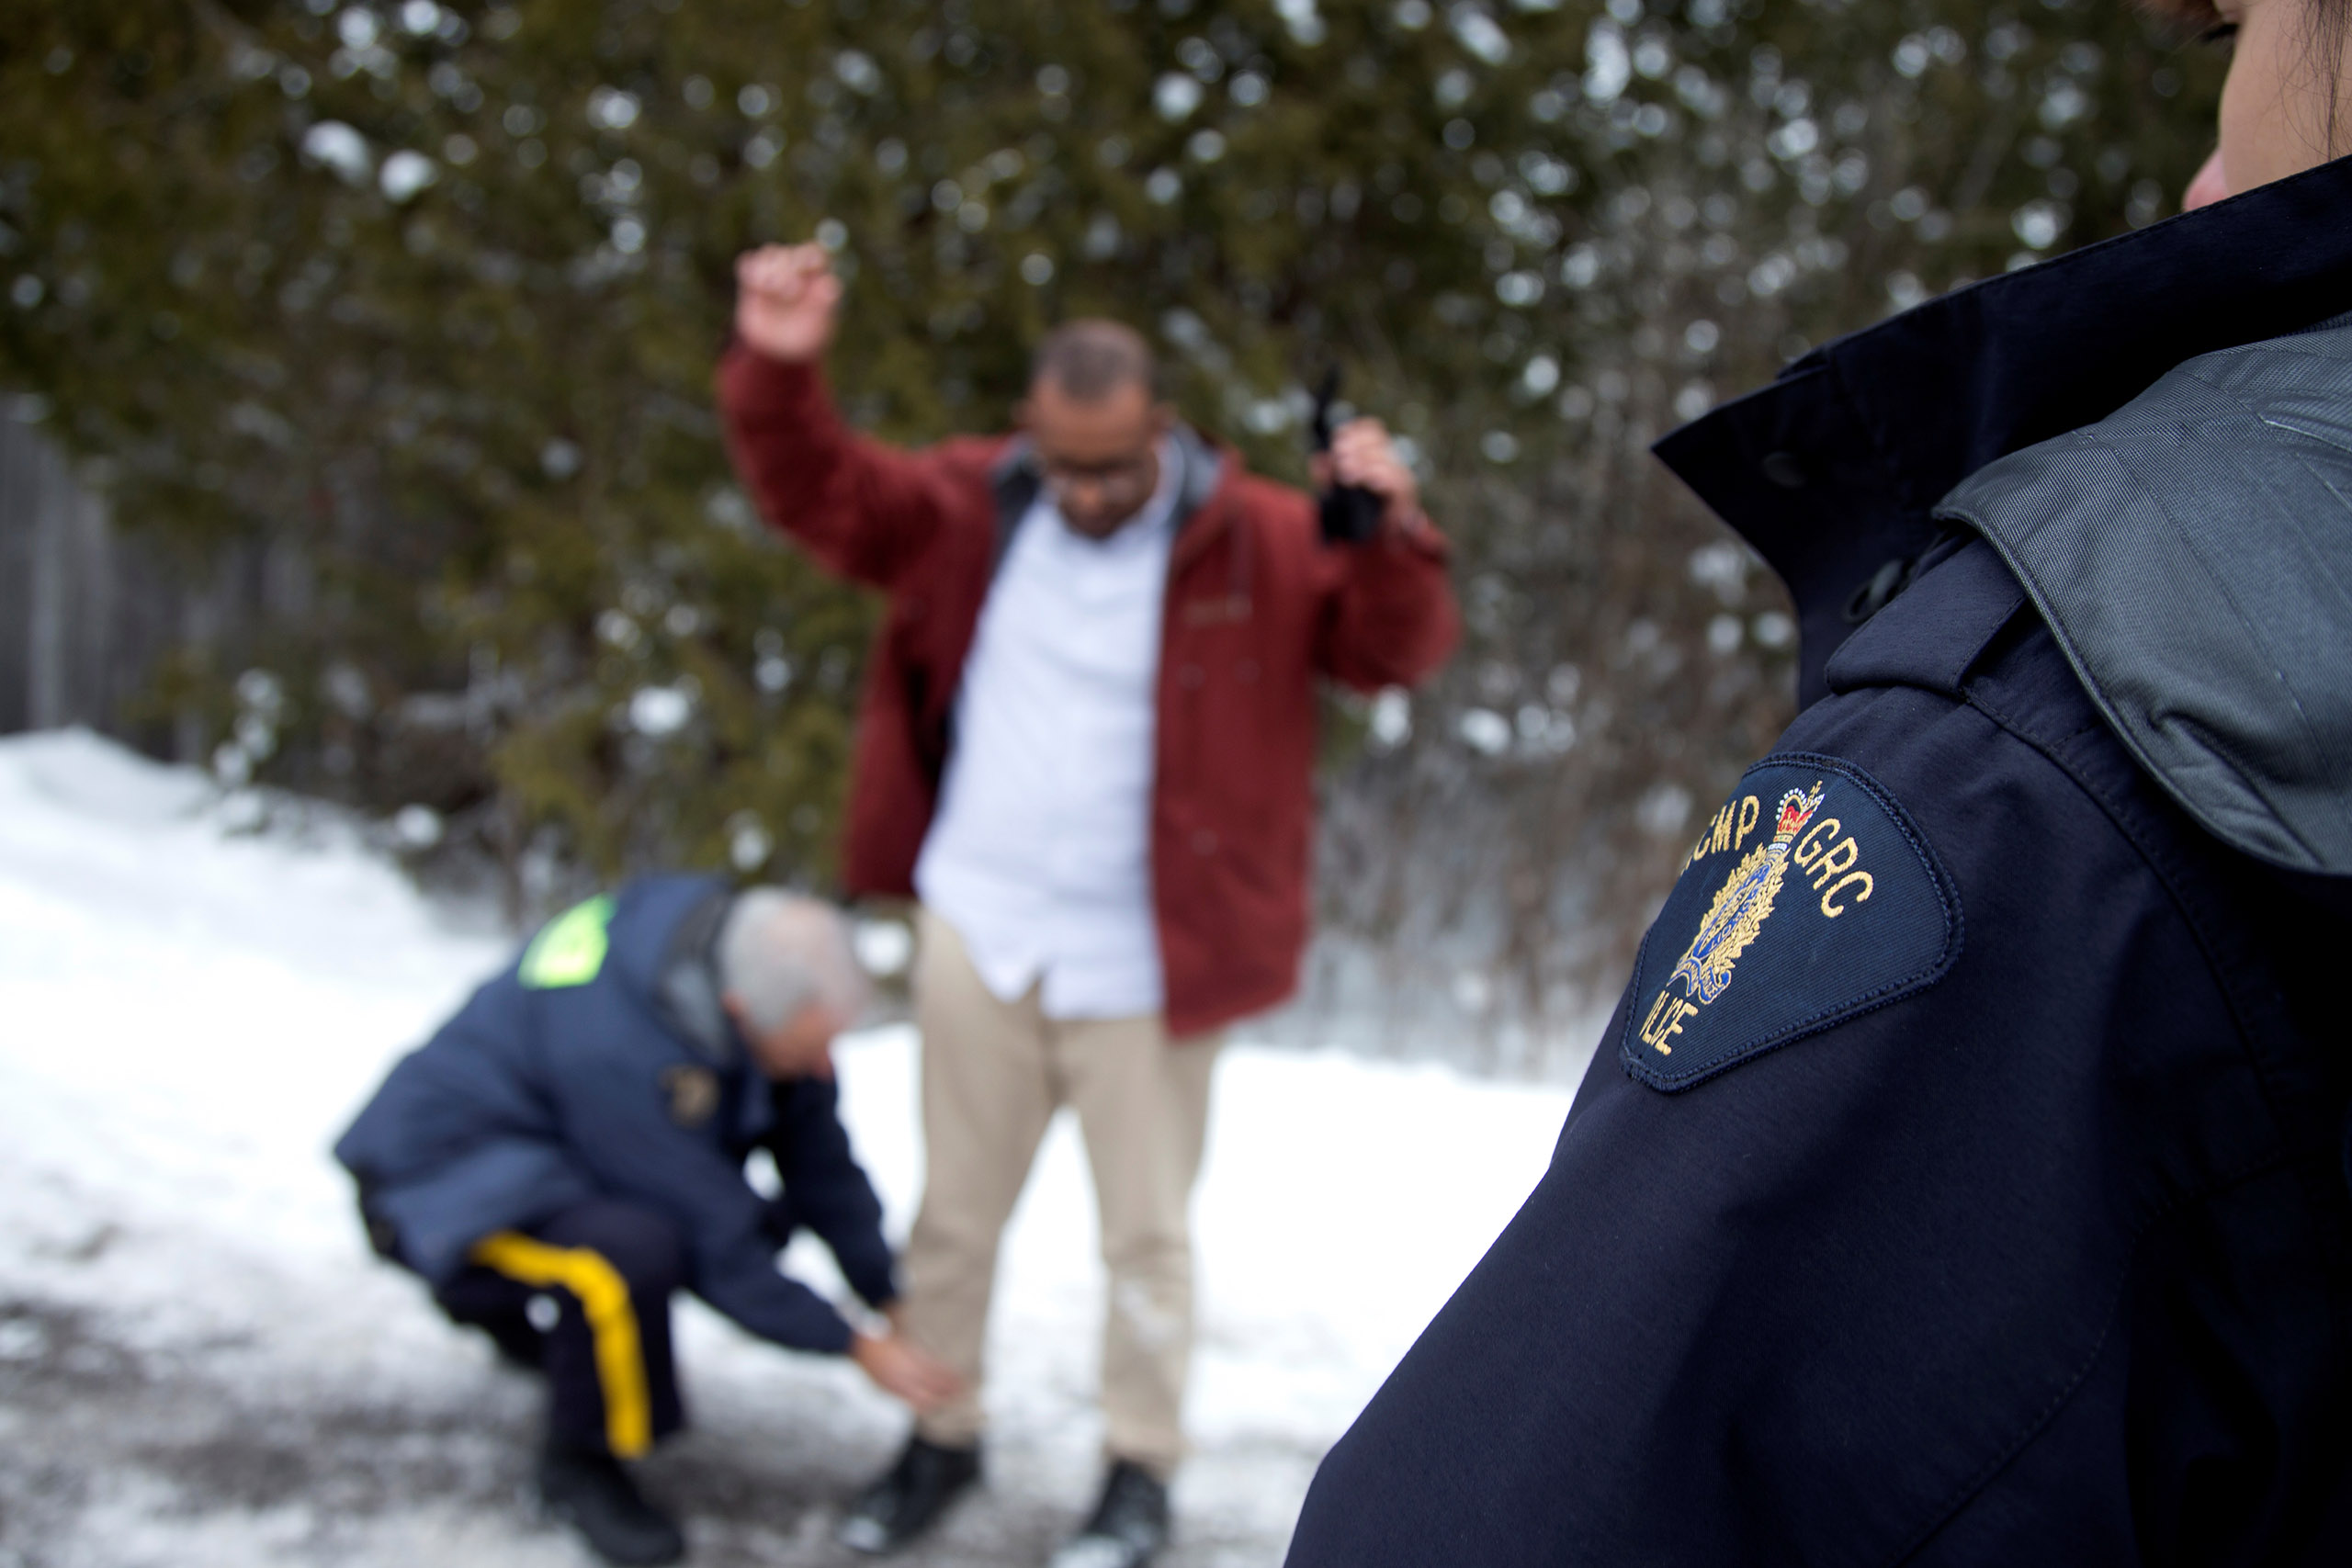 A man from Yemen is taken into custody by Royal Canadian Mounted Police (RCMP) officers after walking across the U.S.-Canada border into Hemmingford, Quebec, on Feb. 14, 2017.